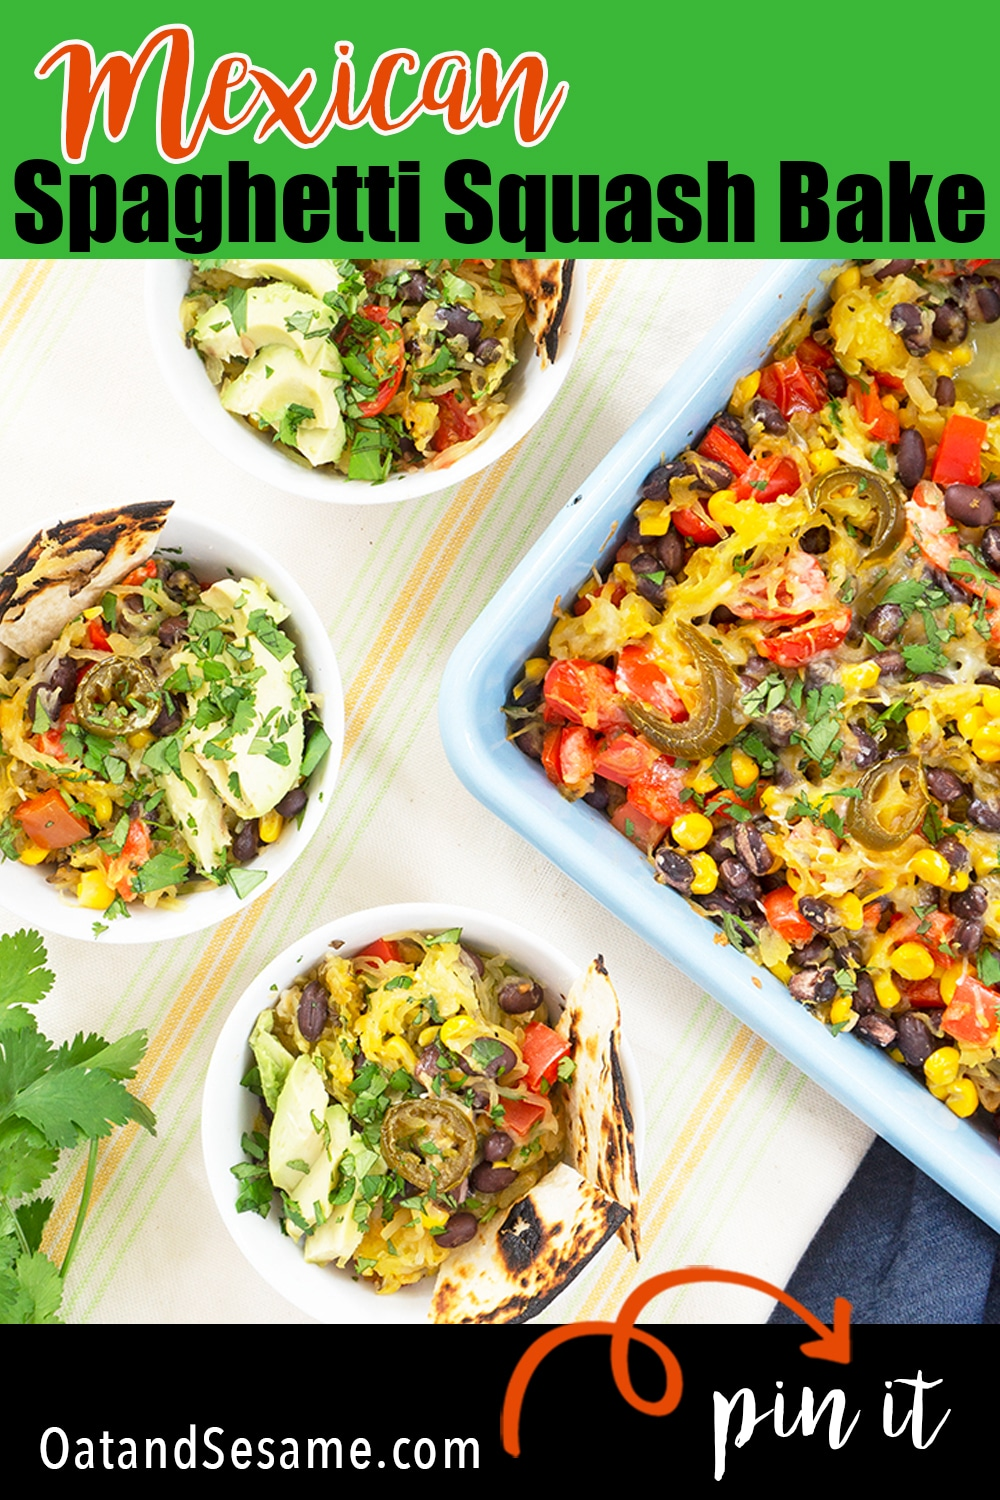 Mexican Spaghetti Squash Bake is an easy weeknight casserole made with black beans, bell pepper, cherry tomatoes, corn and green chilies. Served with sliced avocado, shredded cheese and pickled jalapeños. | #VEGETARIAN | #SPAGHETTI SQUASH | #CASSEROLE | #Recipes at OatandSesame.com